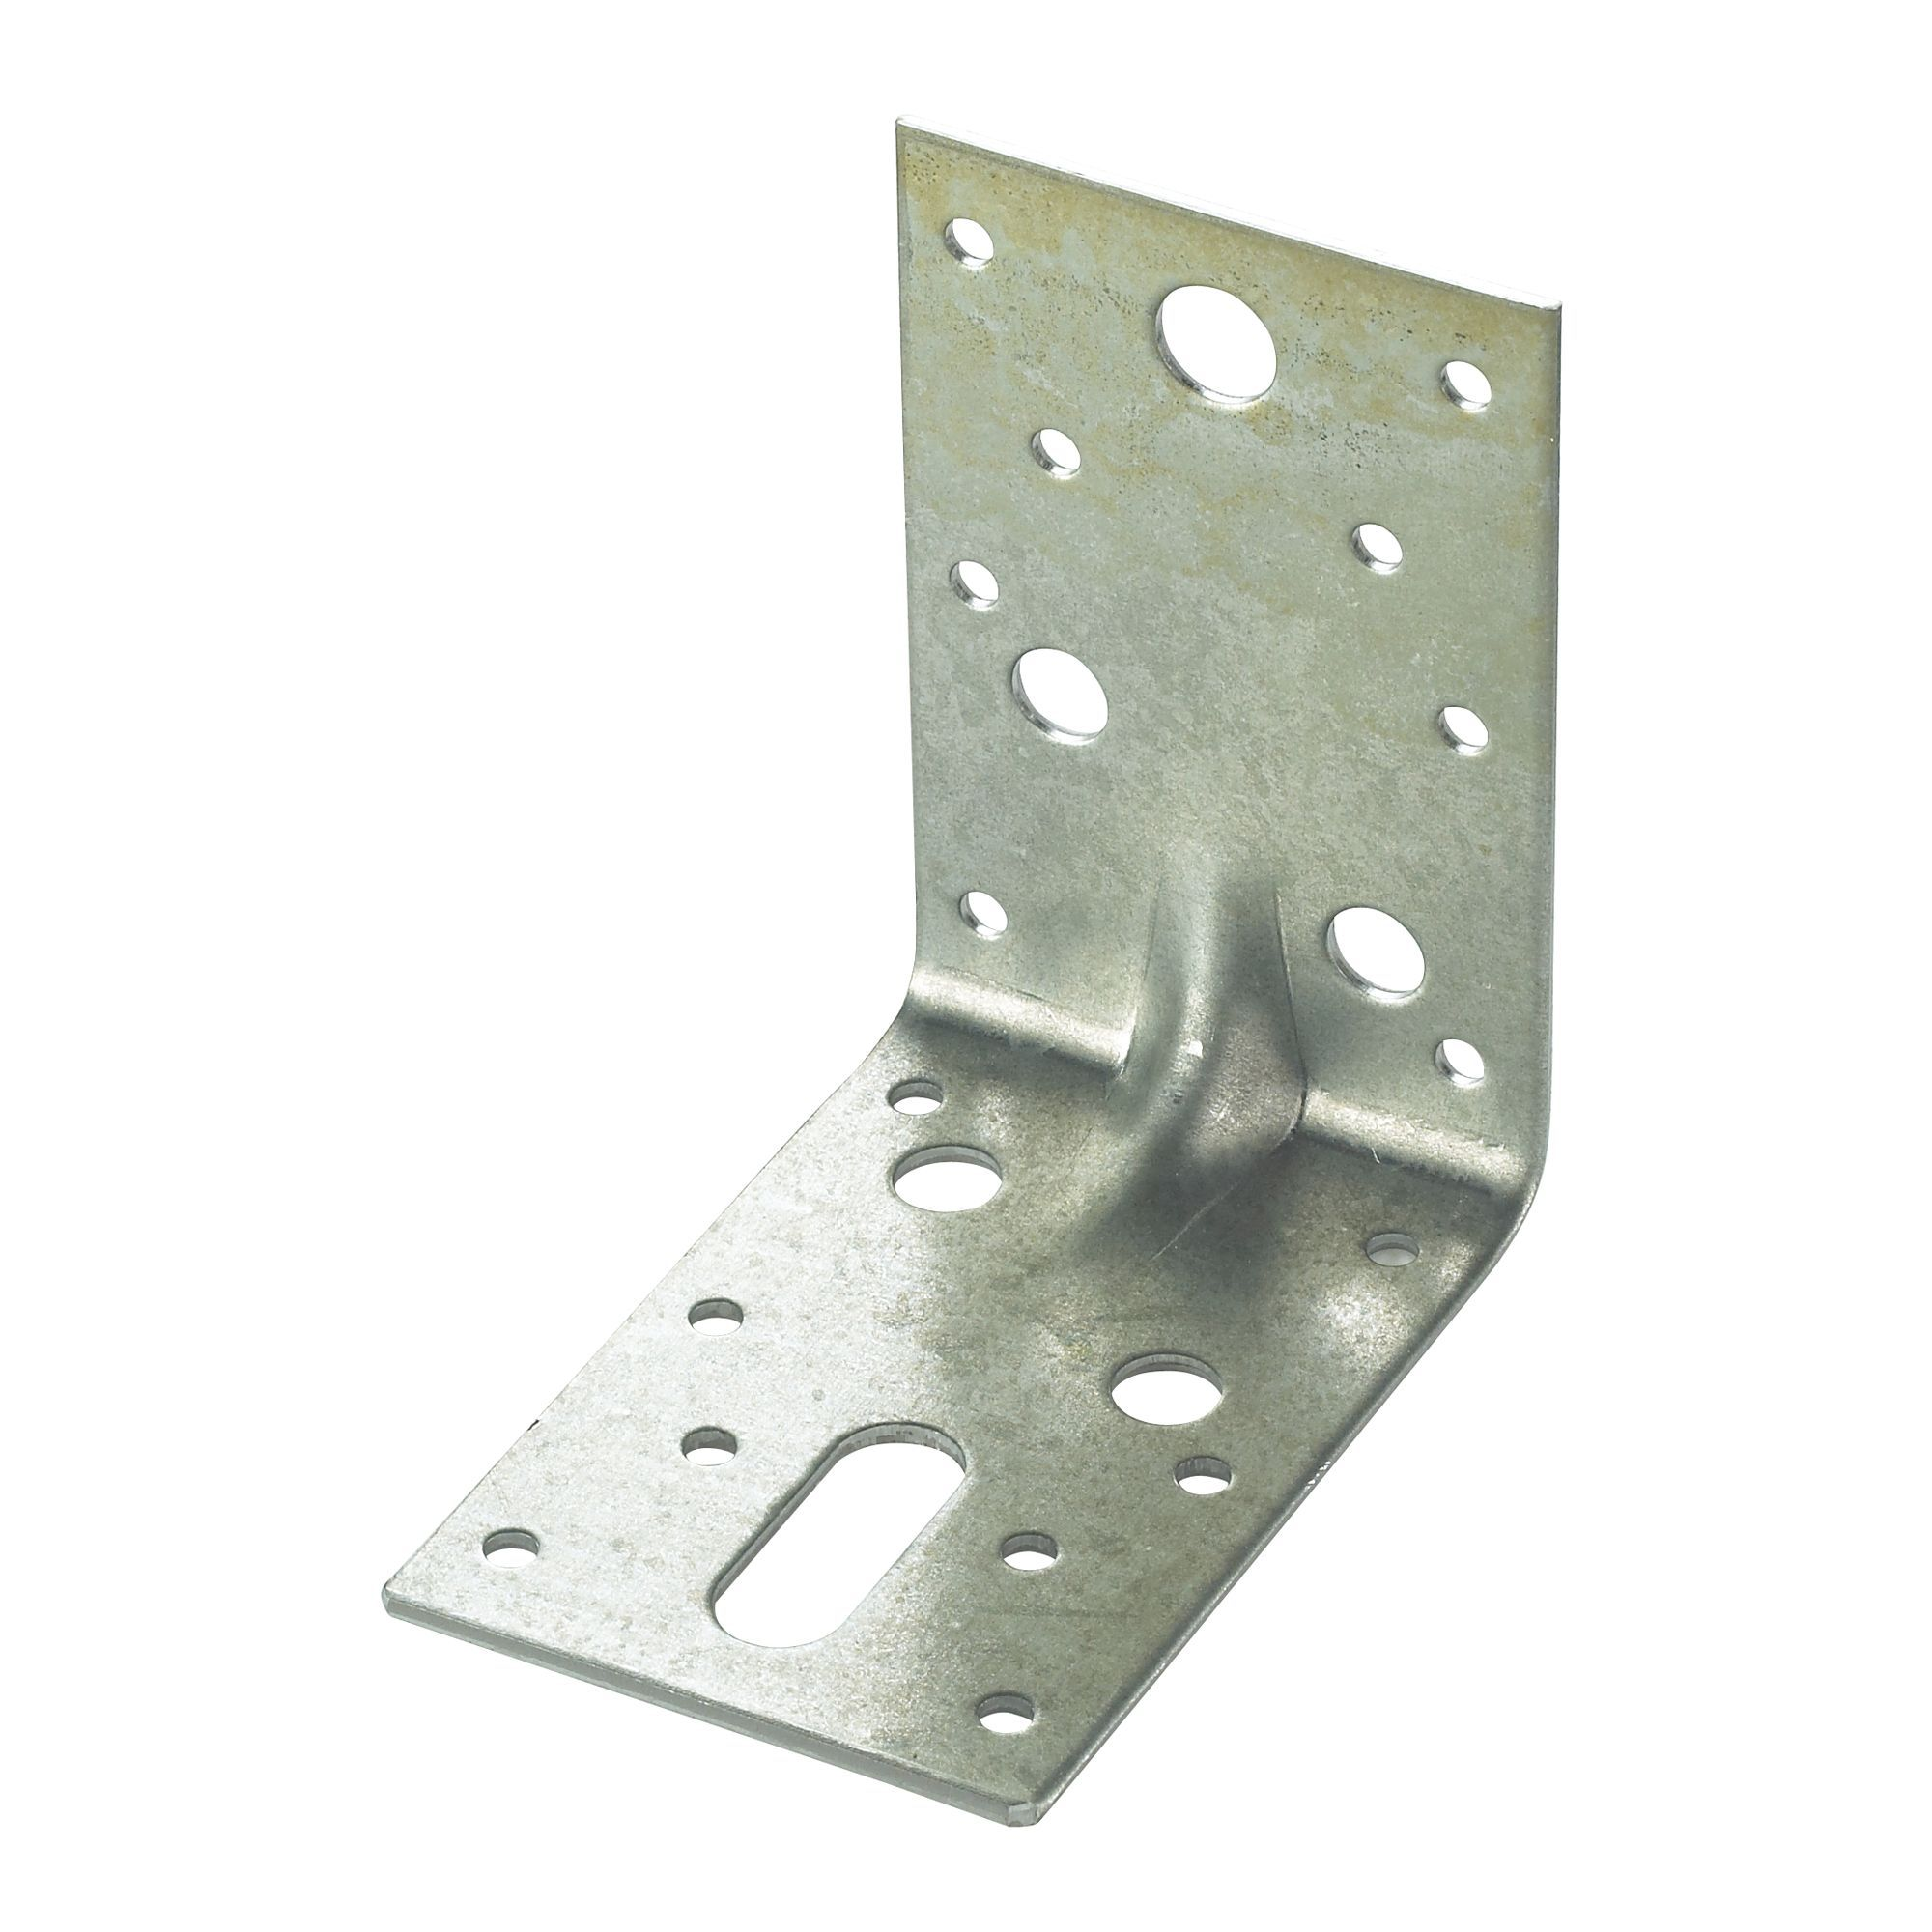 Expamet Heavy Duty 90mm Angle Bracket Pack Of 20